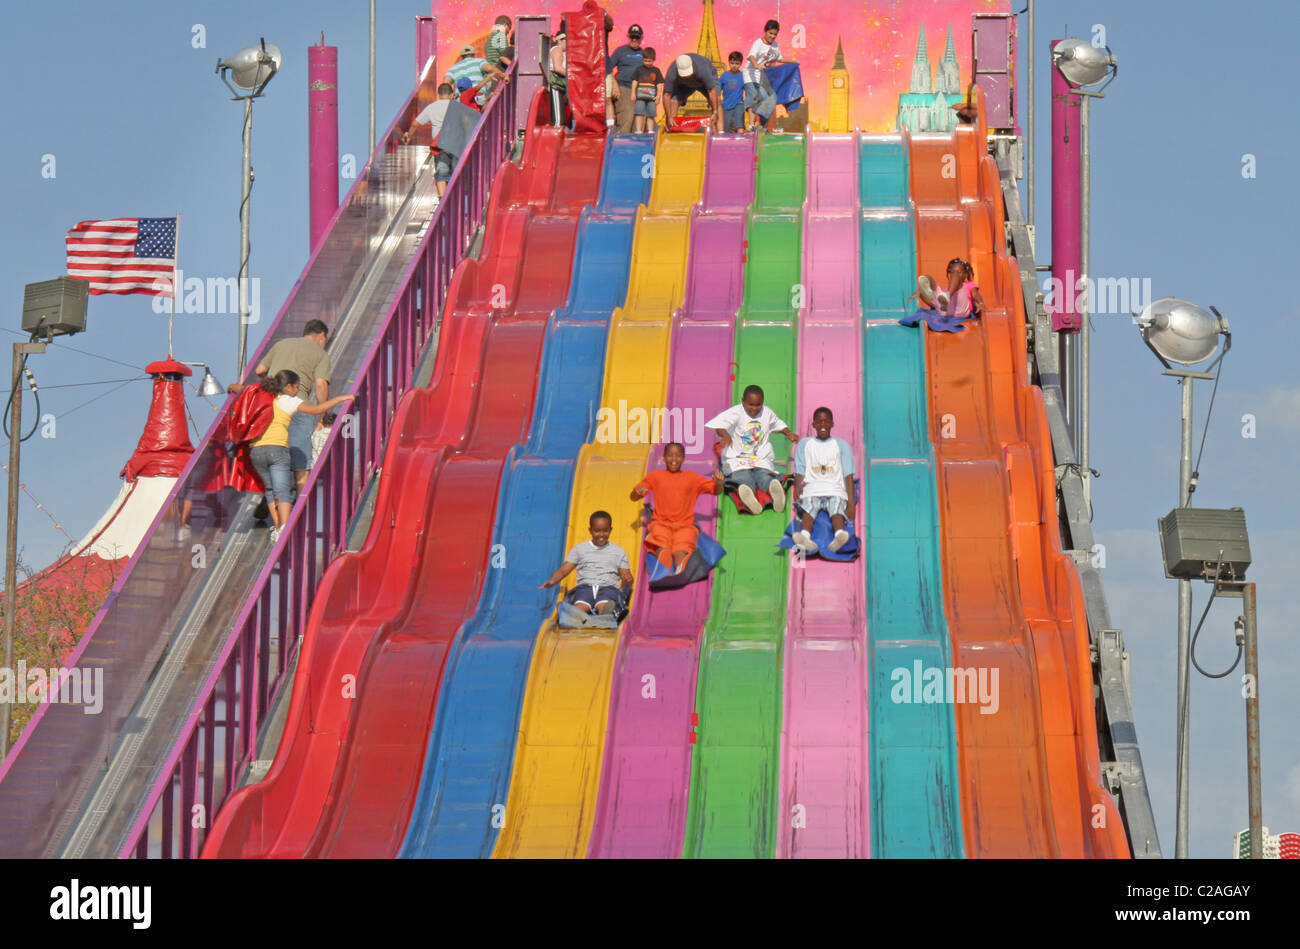 Ethnic Kids Down Giant Slide At Miami Dade County Fair